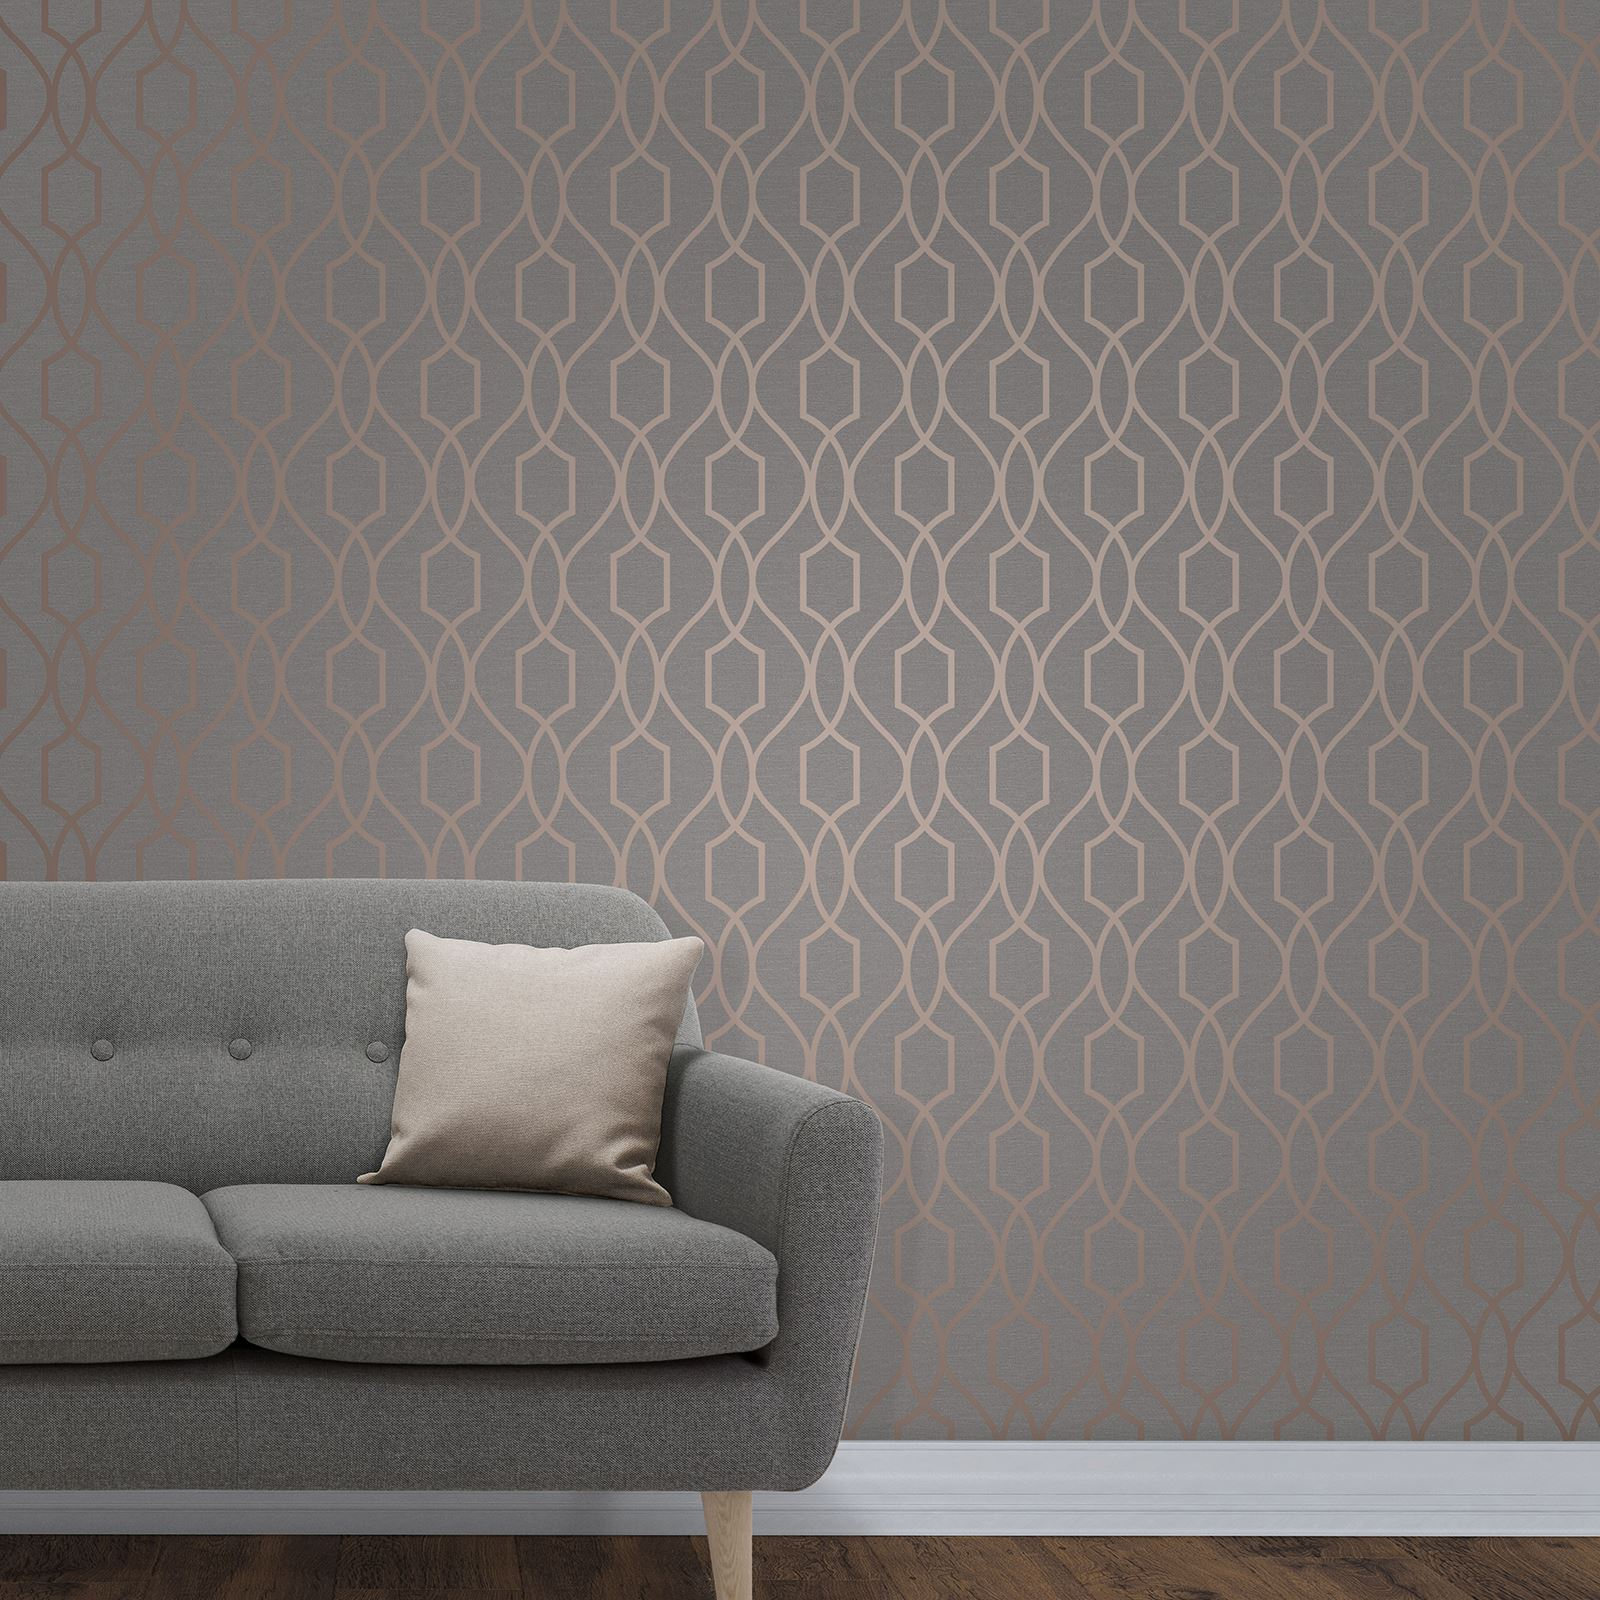 GEOMETRIC-WALLPAPER-METALLIC-SMOOTH-TEXTURED-TRIANGLES-TRELLIS-DIAMONDS